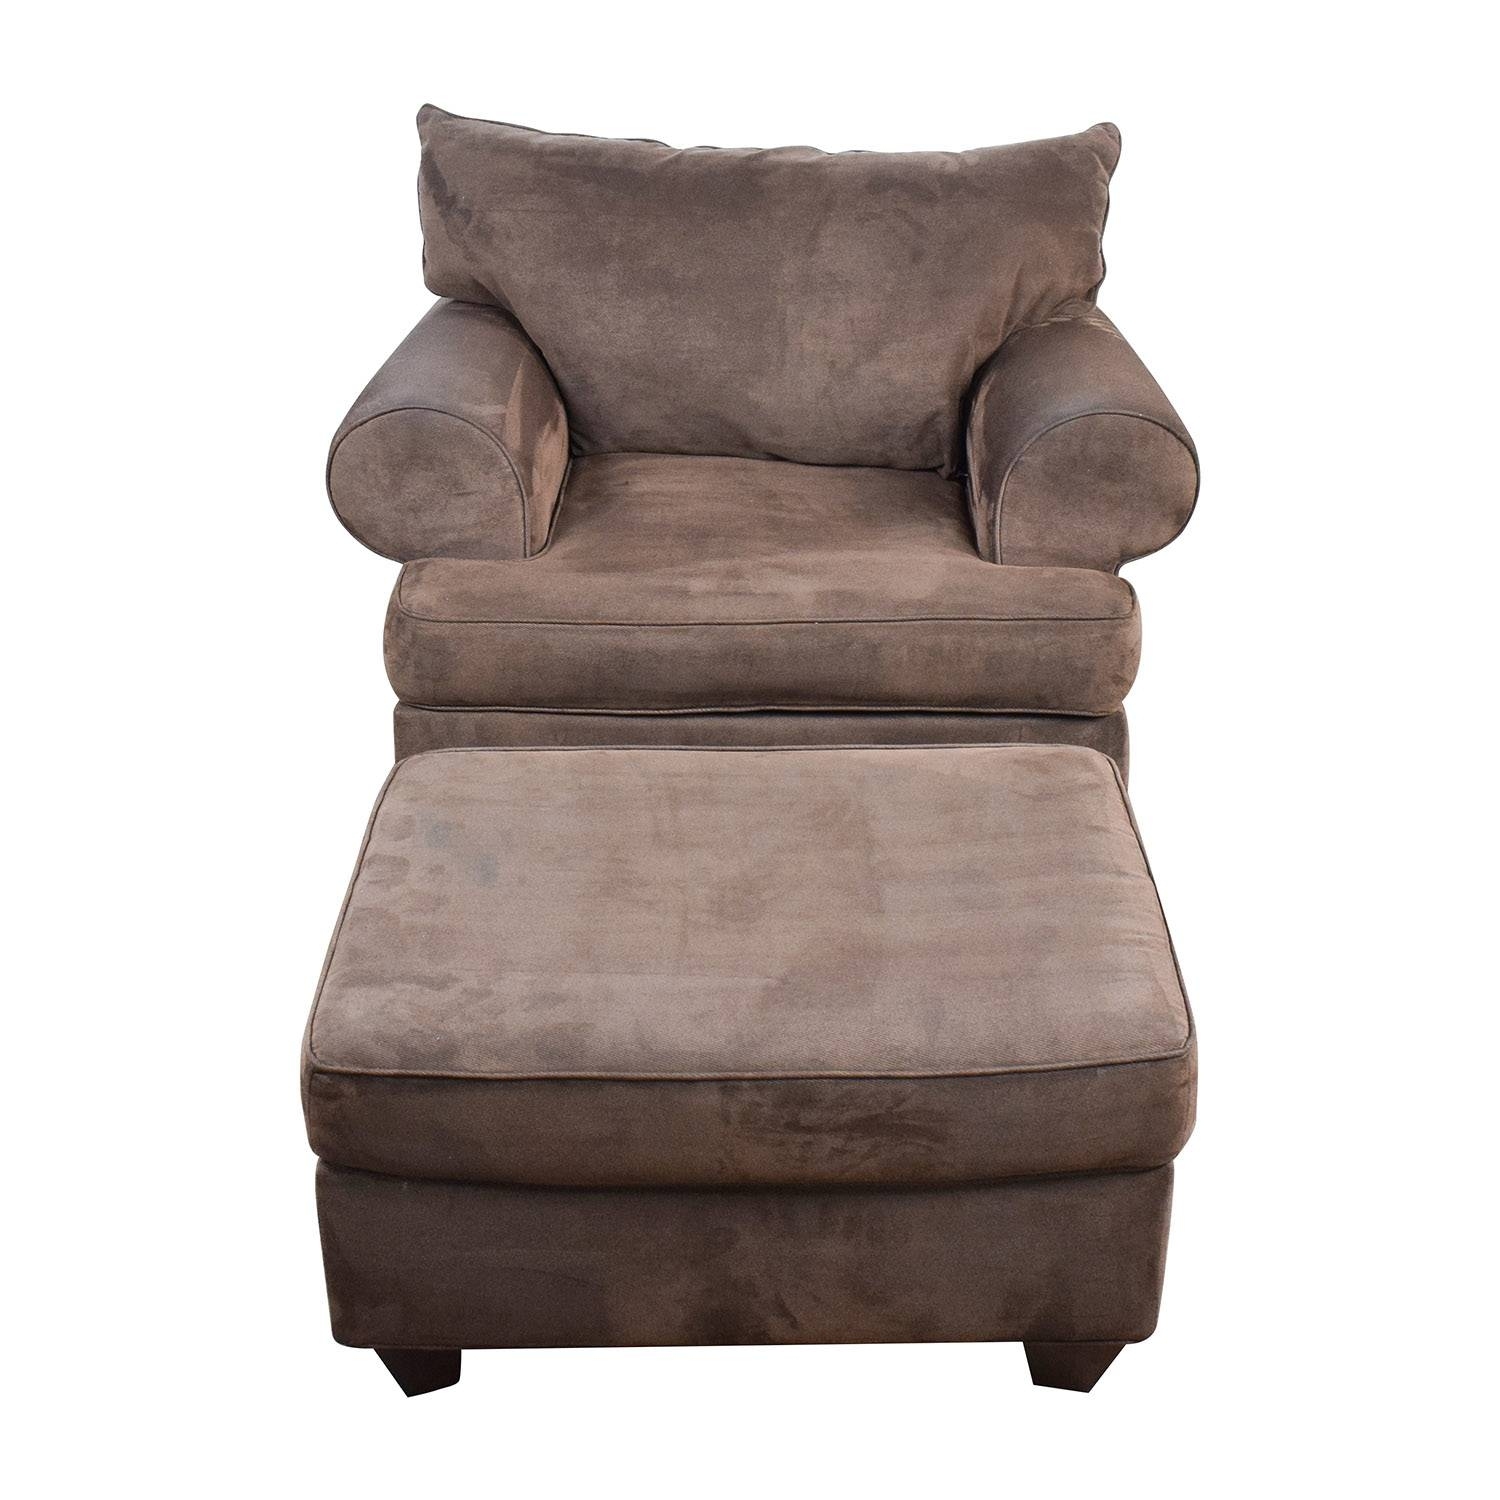 67% Off - Dark Brown Sofa Chair With Ottoman / Chairs regarding Sofa Chair With Ottoman (Image 4 of 30)